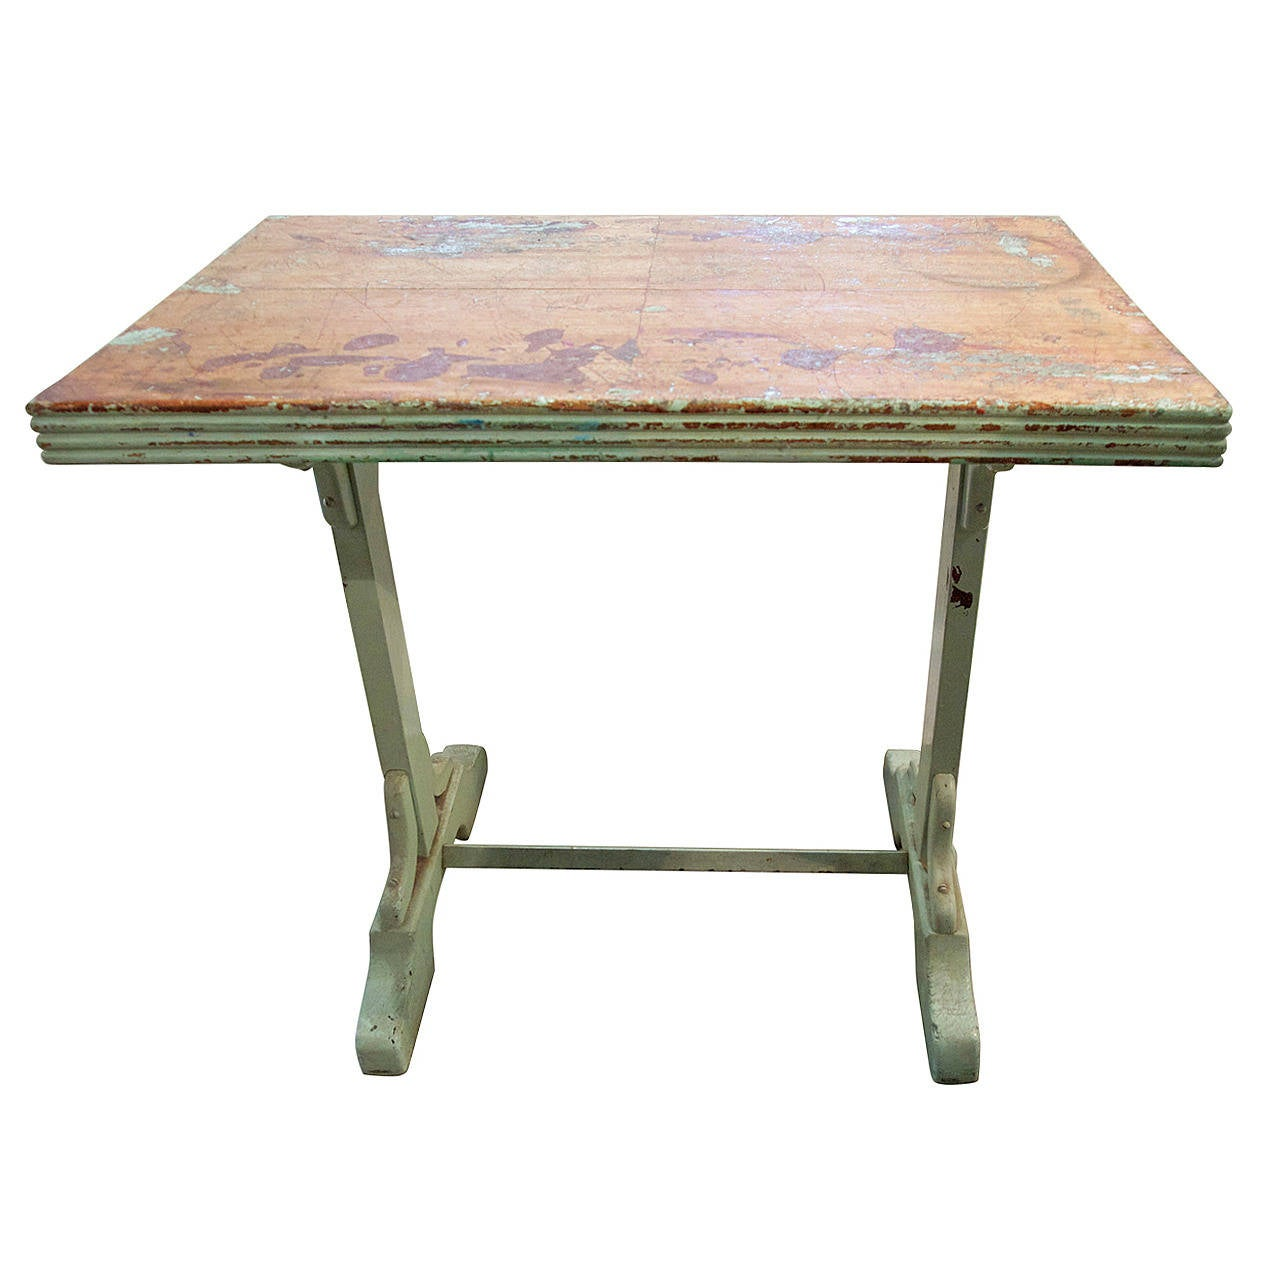 Home > Furniture > Tables > Tables. Full resolution  file, nominally Width 1280 Height 1280 pixels, file with #8B6240.